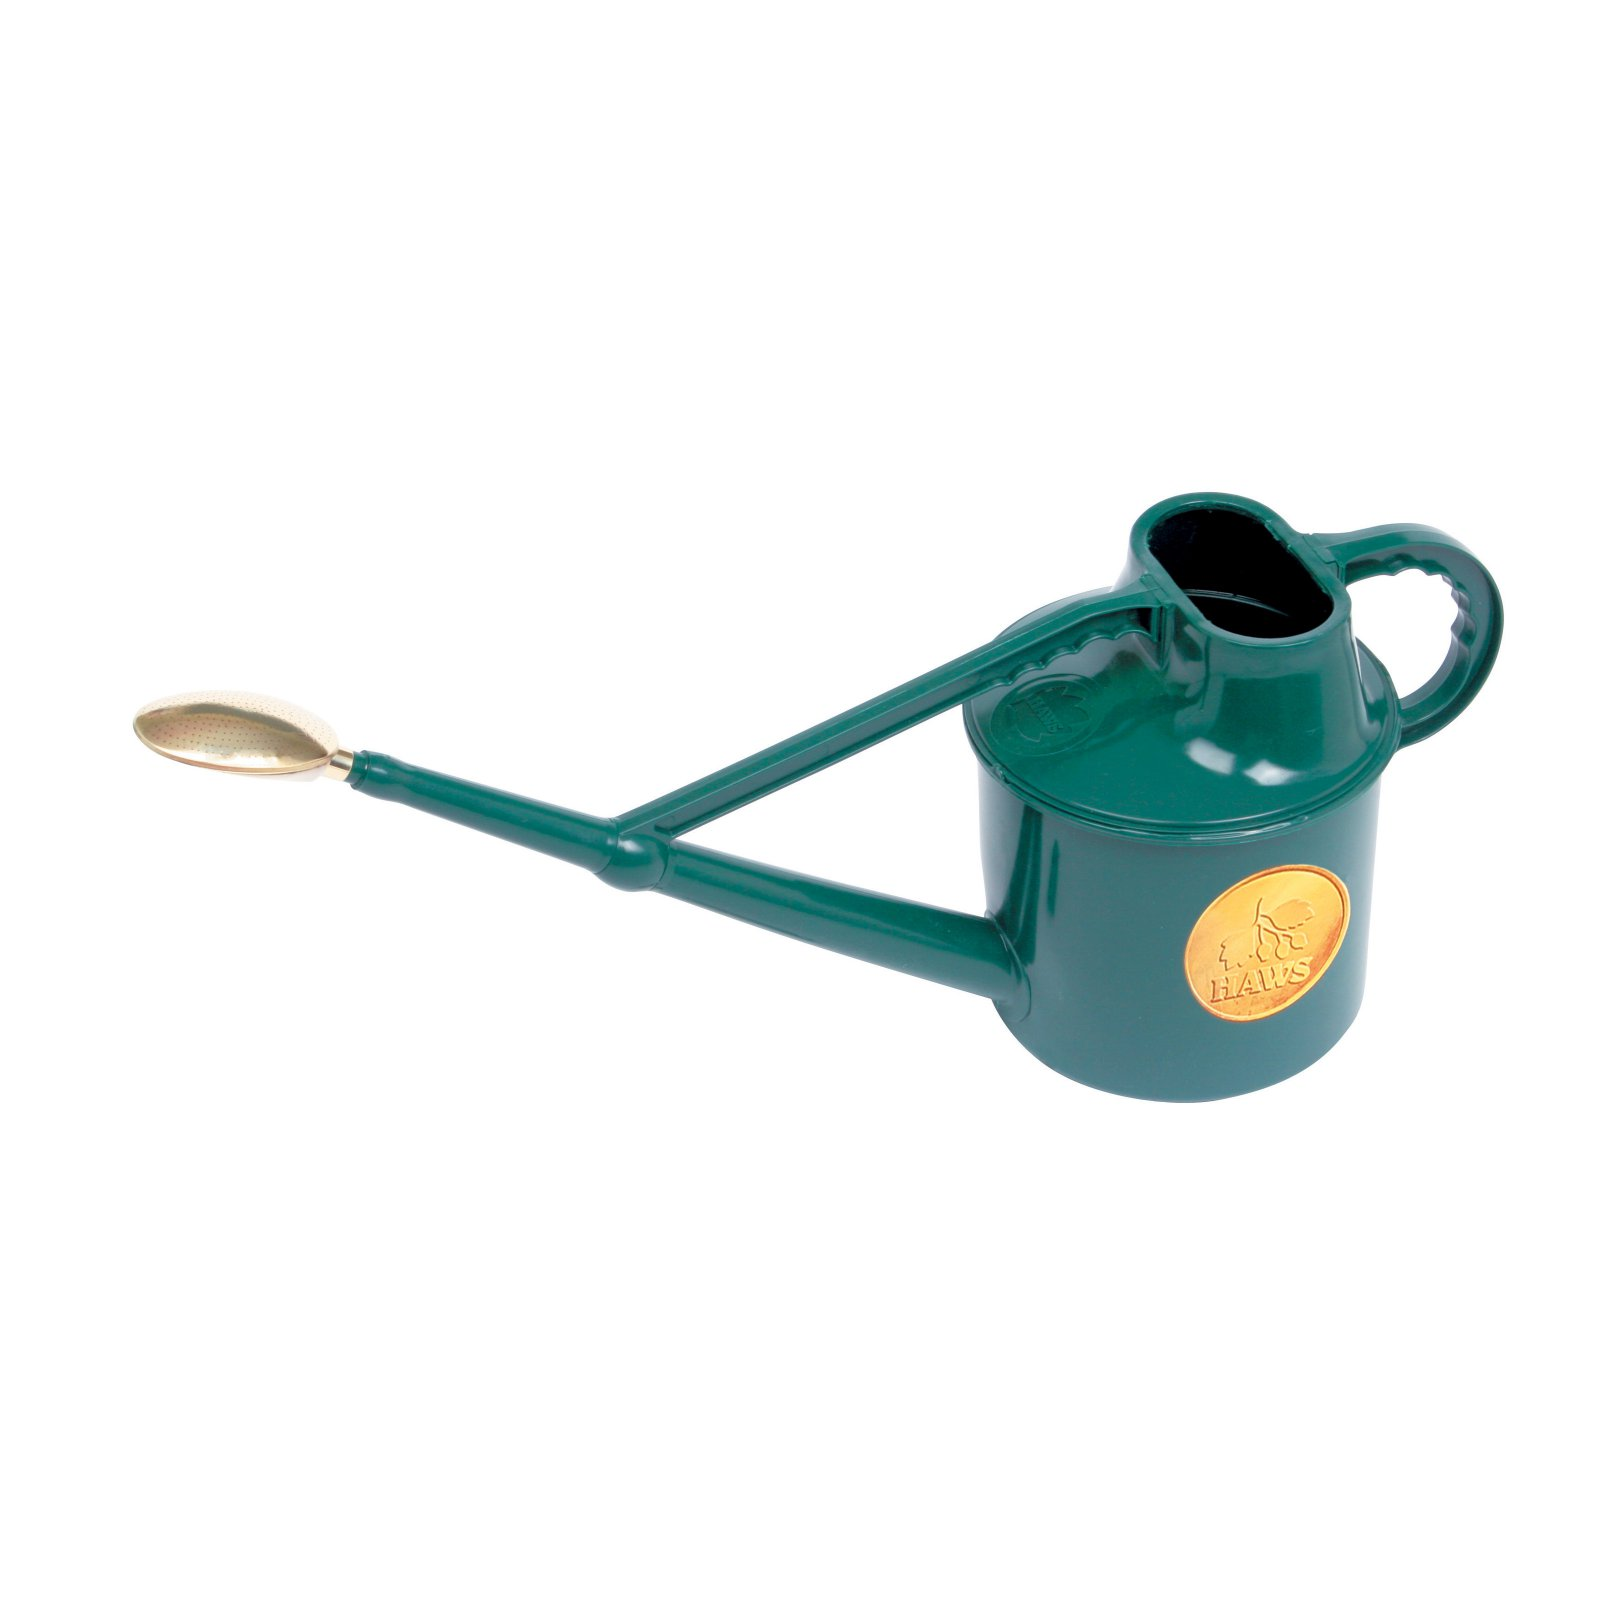 Haws 7 Liters Plastic Green Deluxe Outdoor Watering Can by Watering Cans